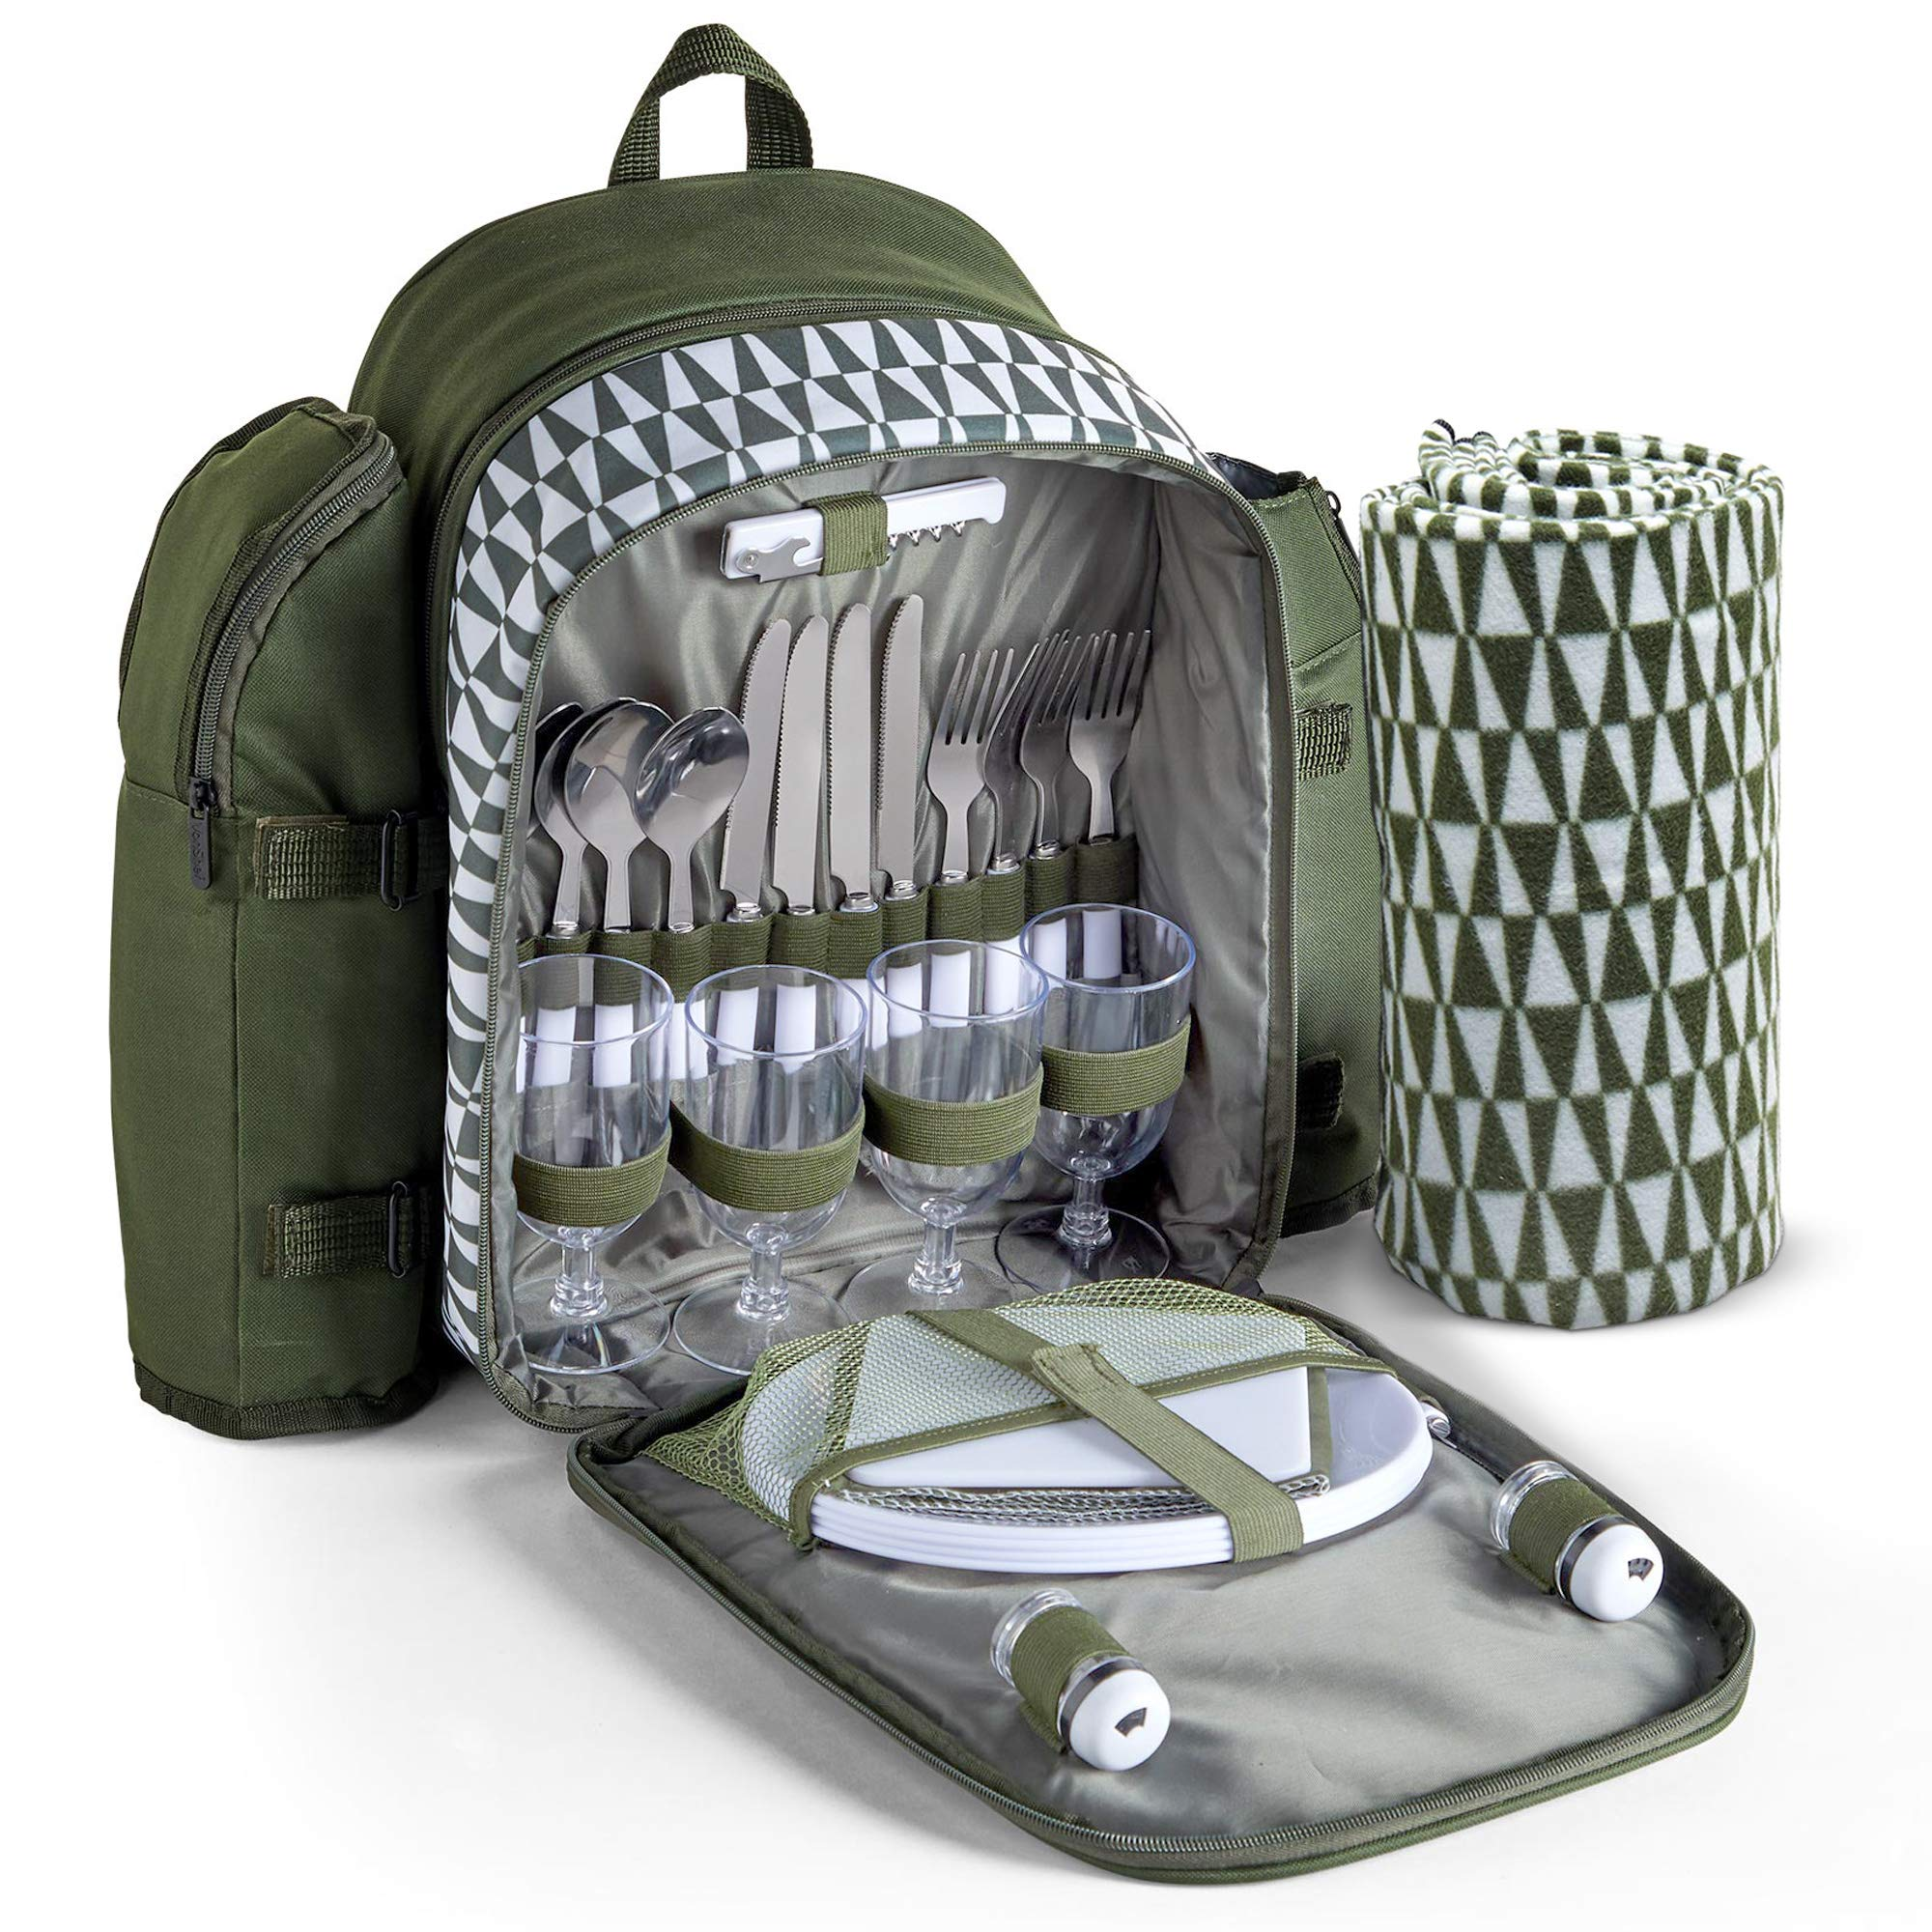 VonShef Picnic Backpack with Insulated Cooler Compartment - Green (4 Person) by VonShef